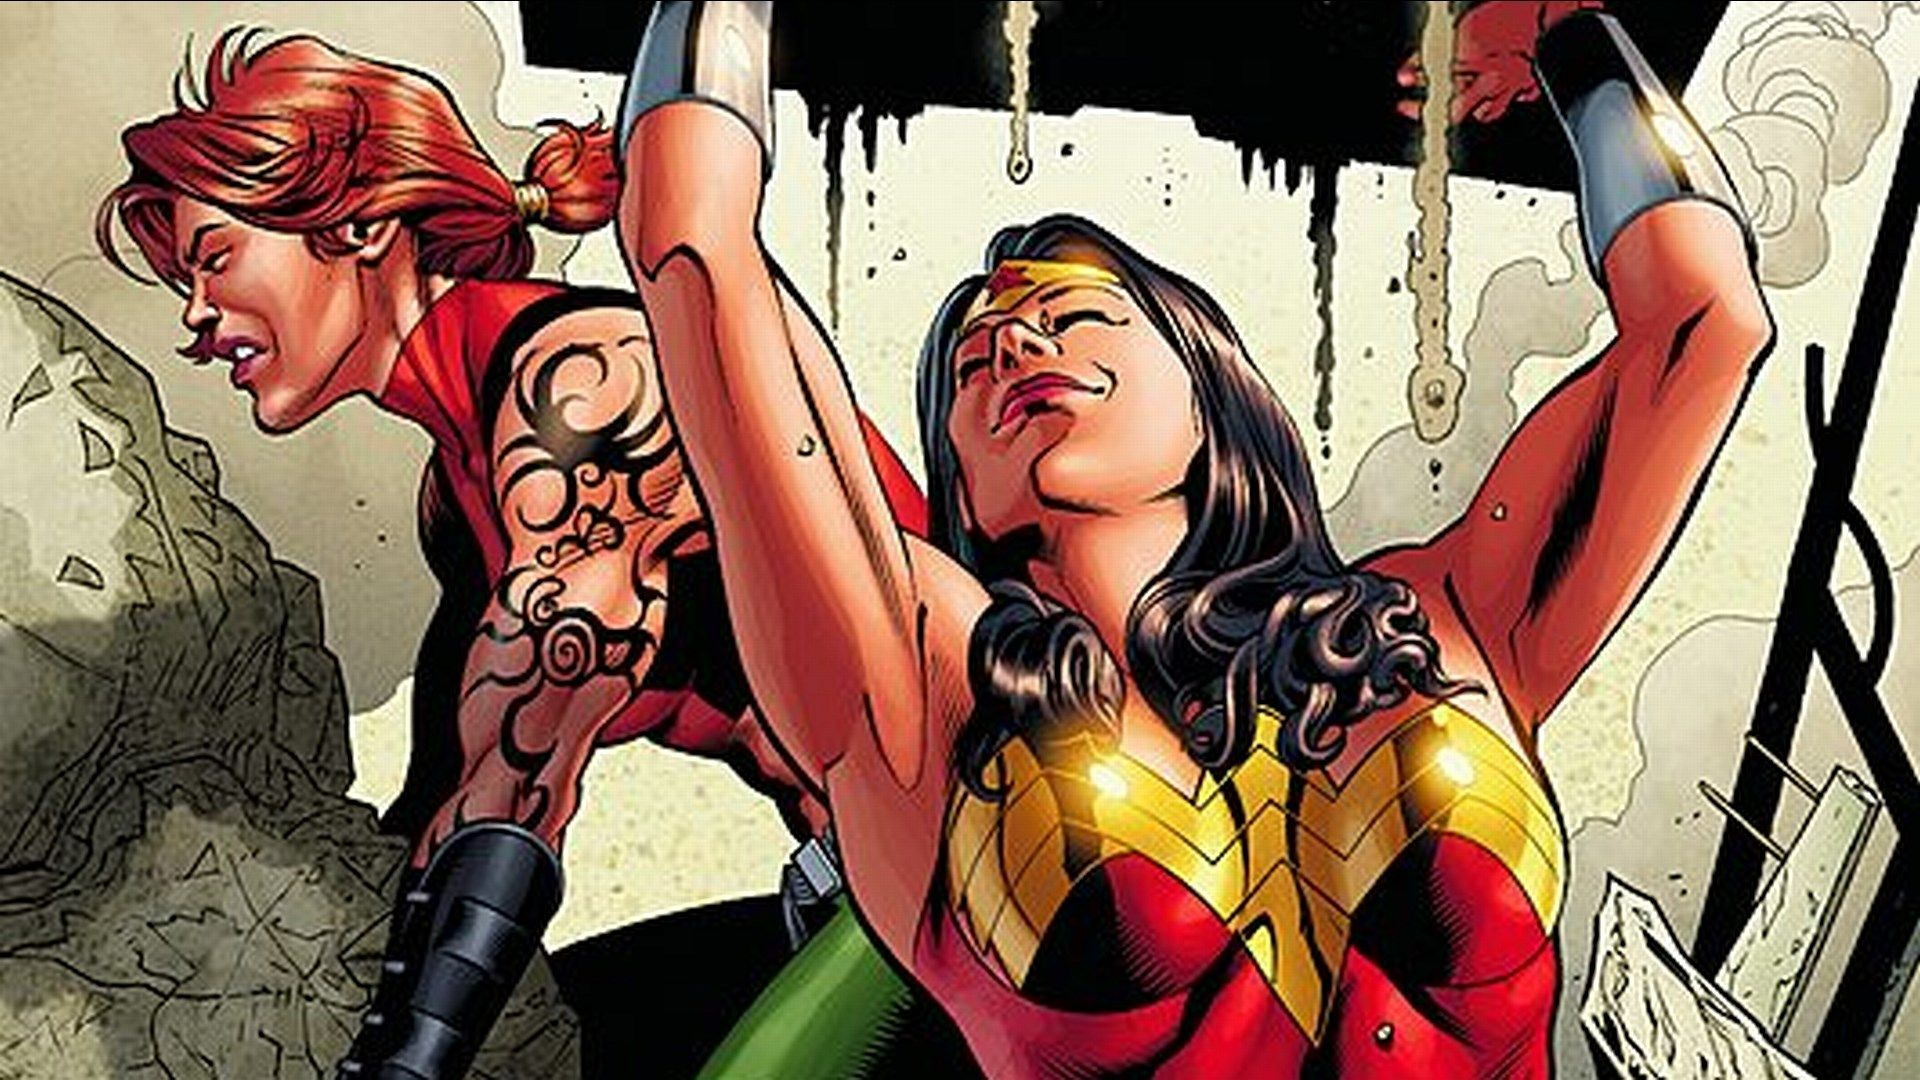 pictures of wonder woman gogolmogol Pinterest